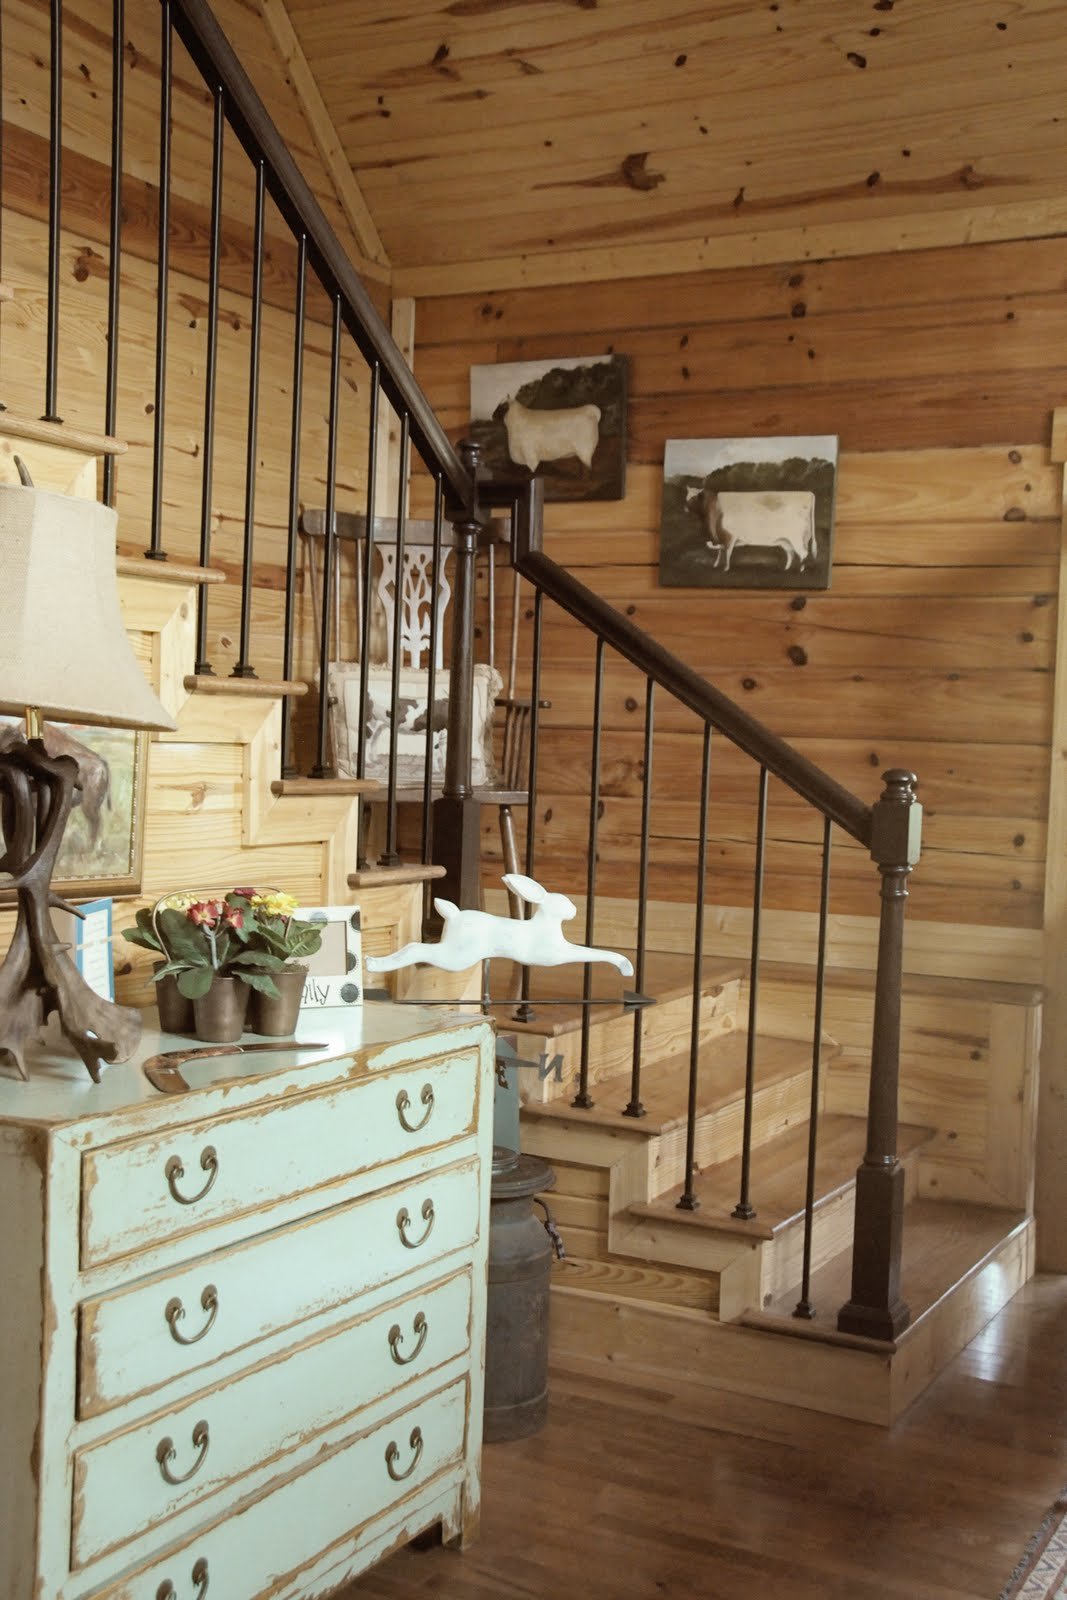 Wood Paneled Room Design: Some Country Inspiration, Cabin Decorating